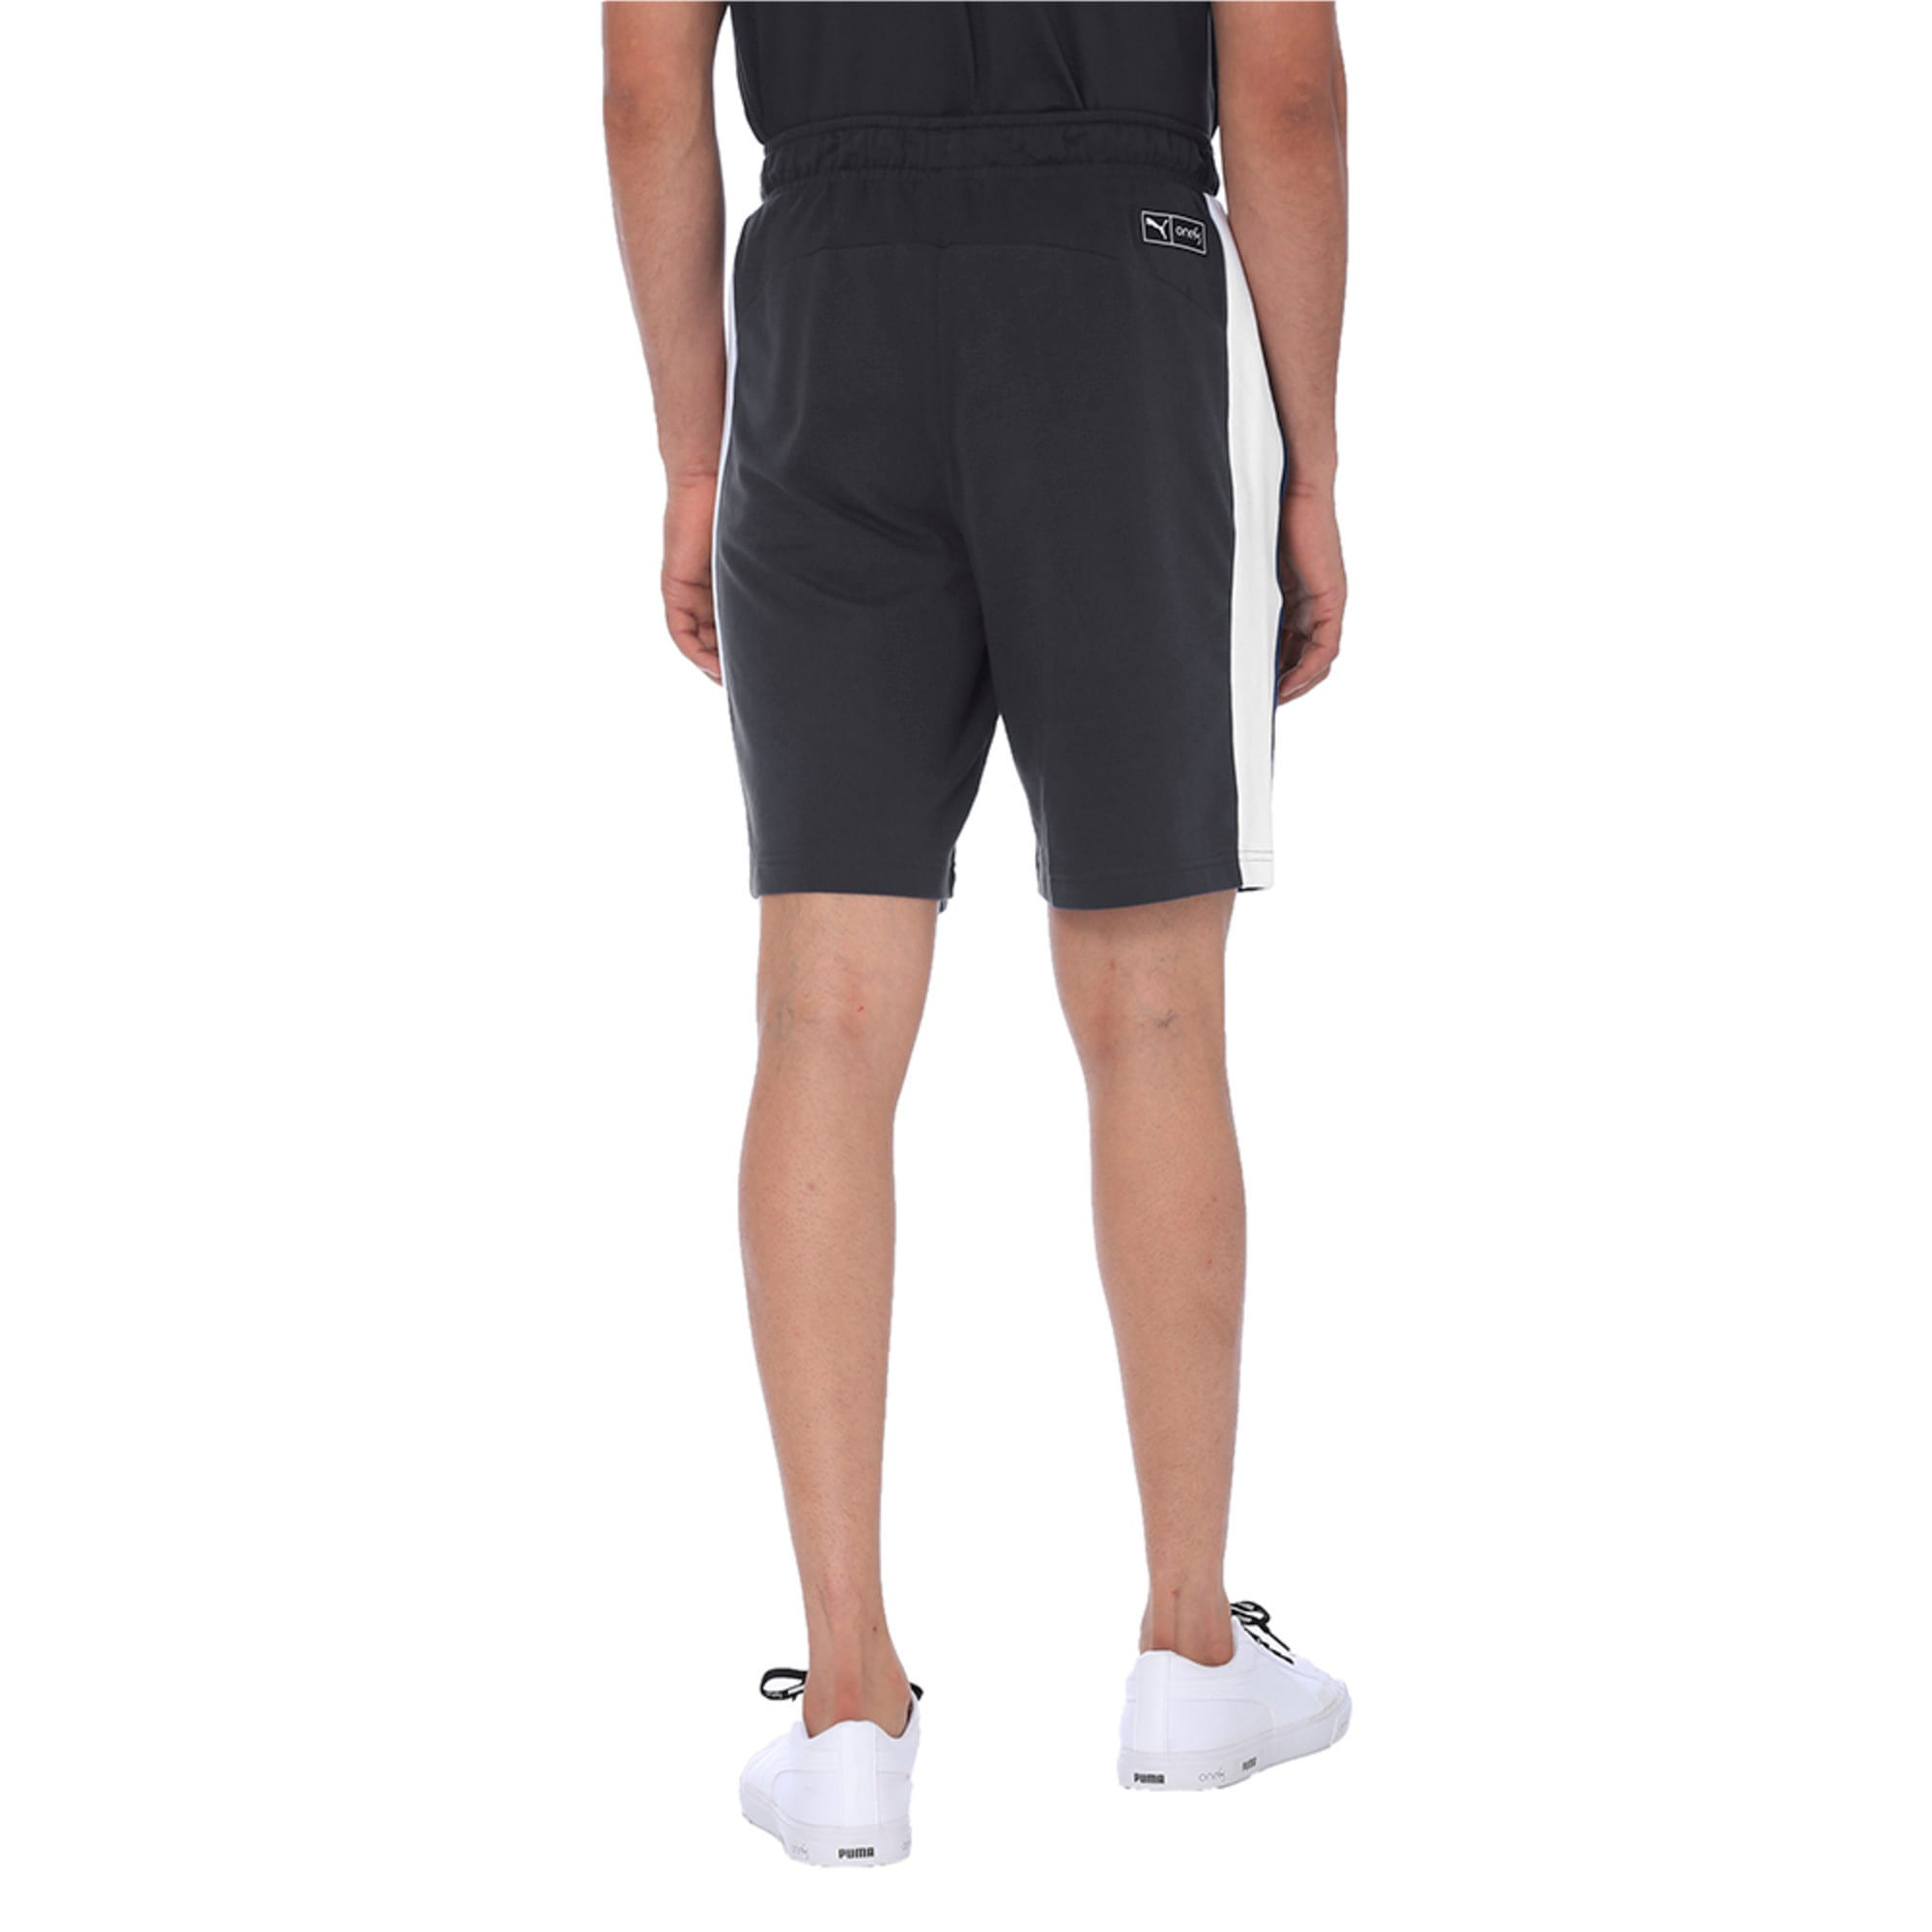 Thumbnail 5 of one8 Men's Knitted Shorts, Dark Gray Heather, medium-IND